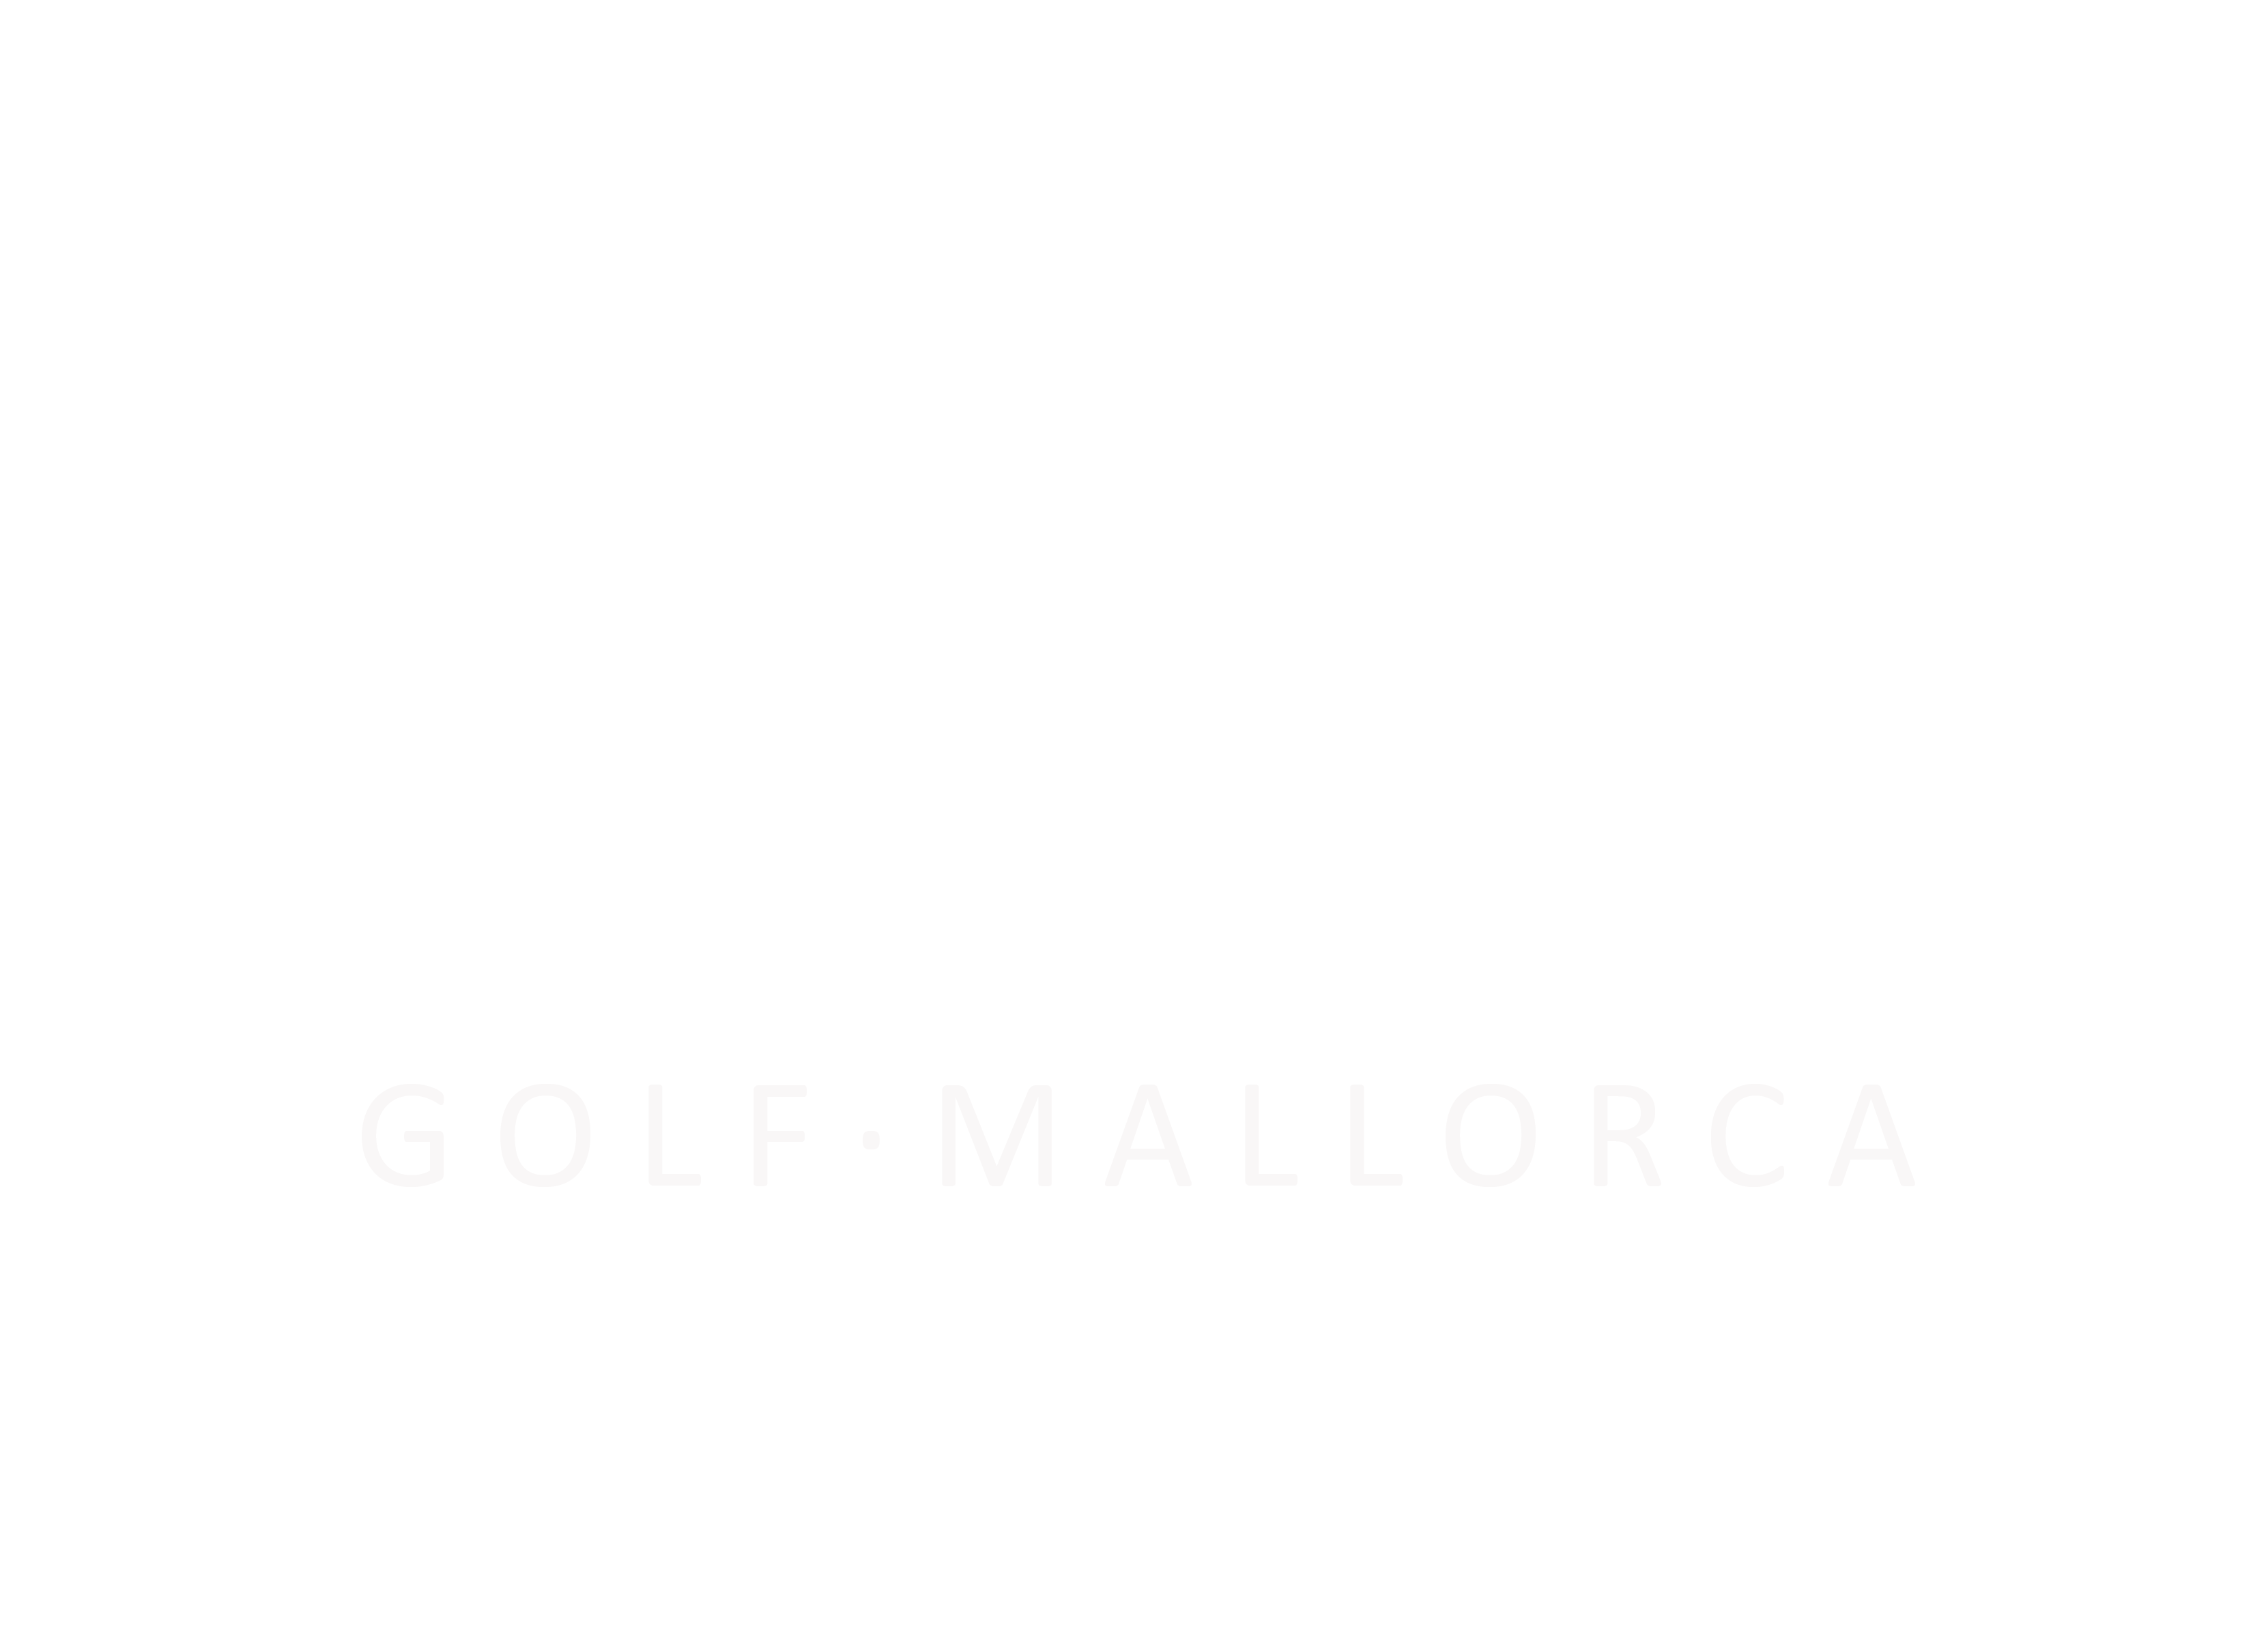 Golf Son Antem – Mallorca